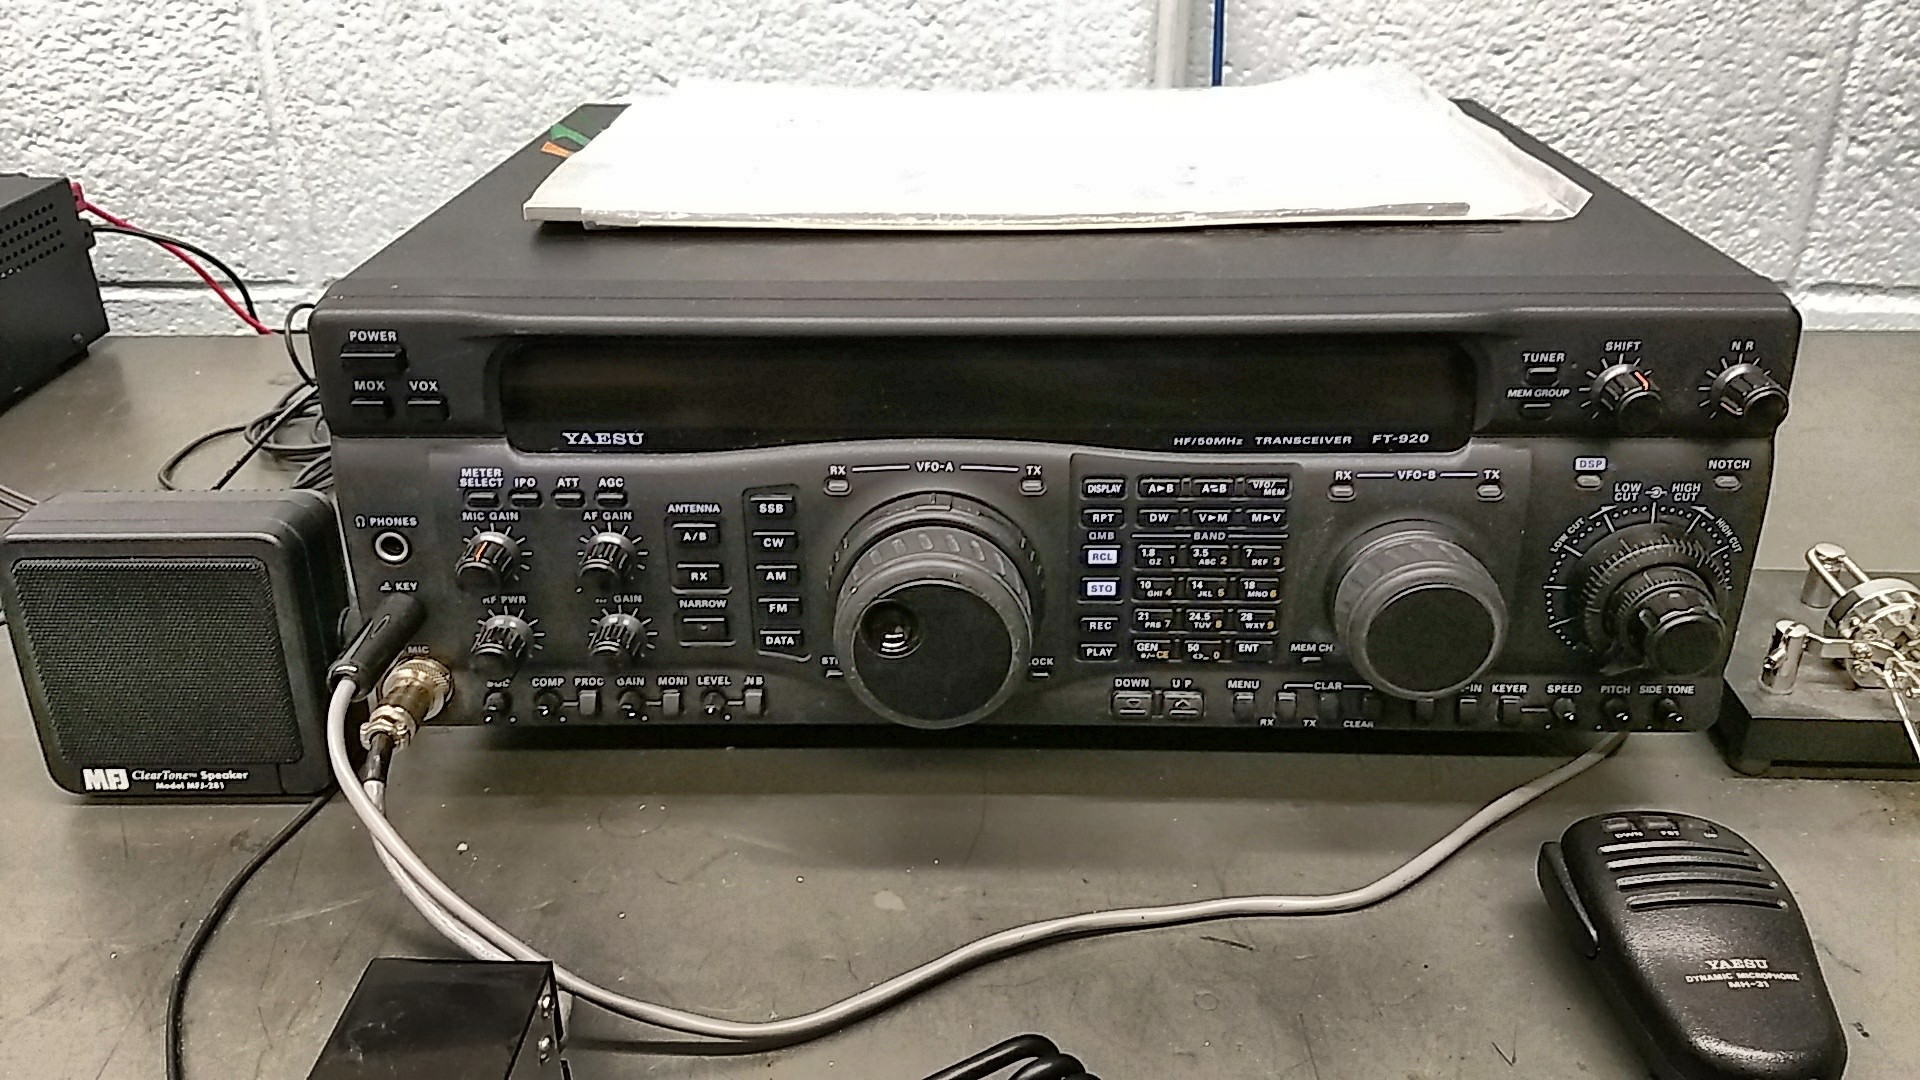 Yaesu FT-920 HF Transceiver | Amateur Radio Club